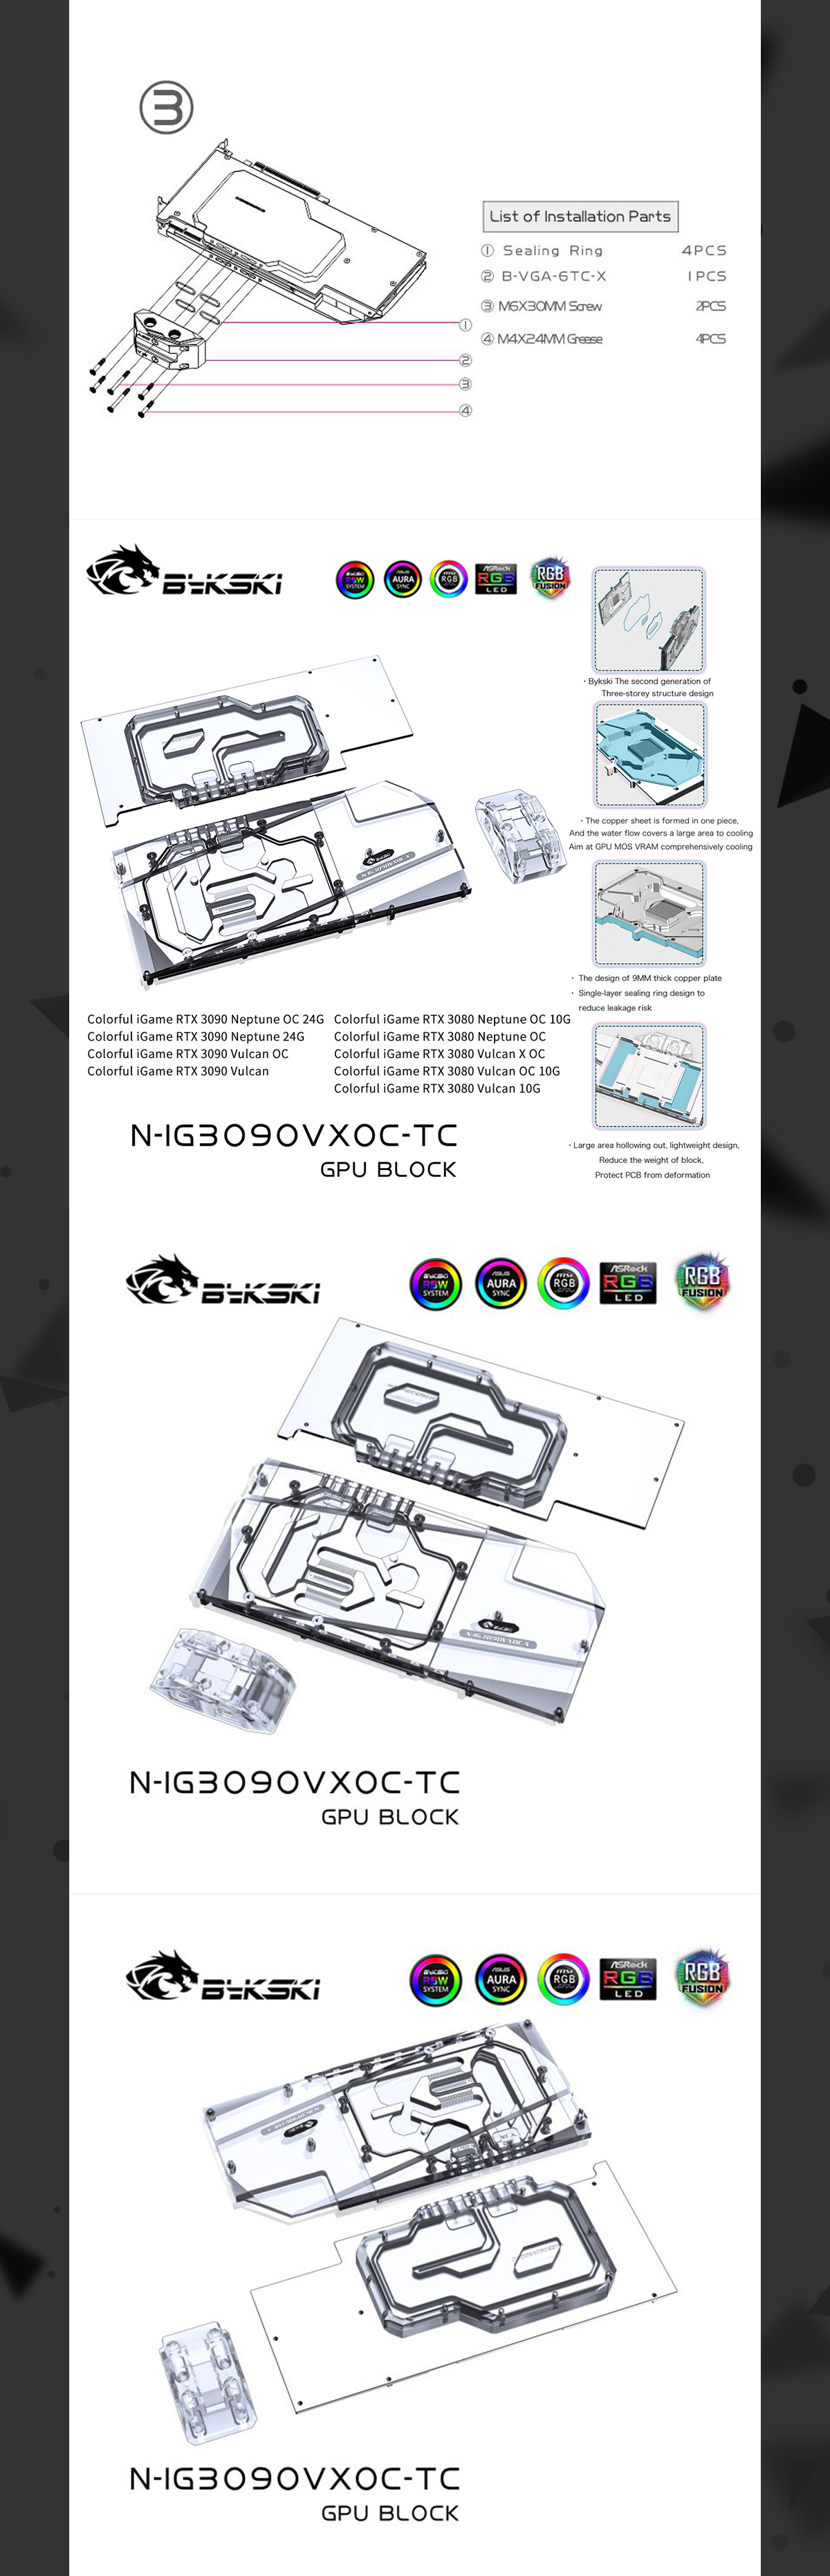 Bykski GPU Block With Active Waterway Backplane Cooler For Colorful iGame RTX 3090 3080Ti 3080 Neptune / Vulcan N-IG3090VXOC-TC